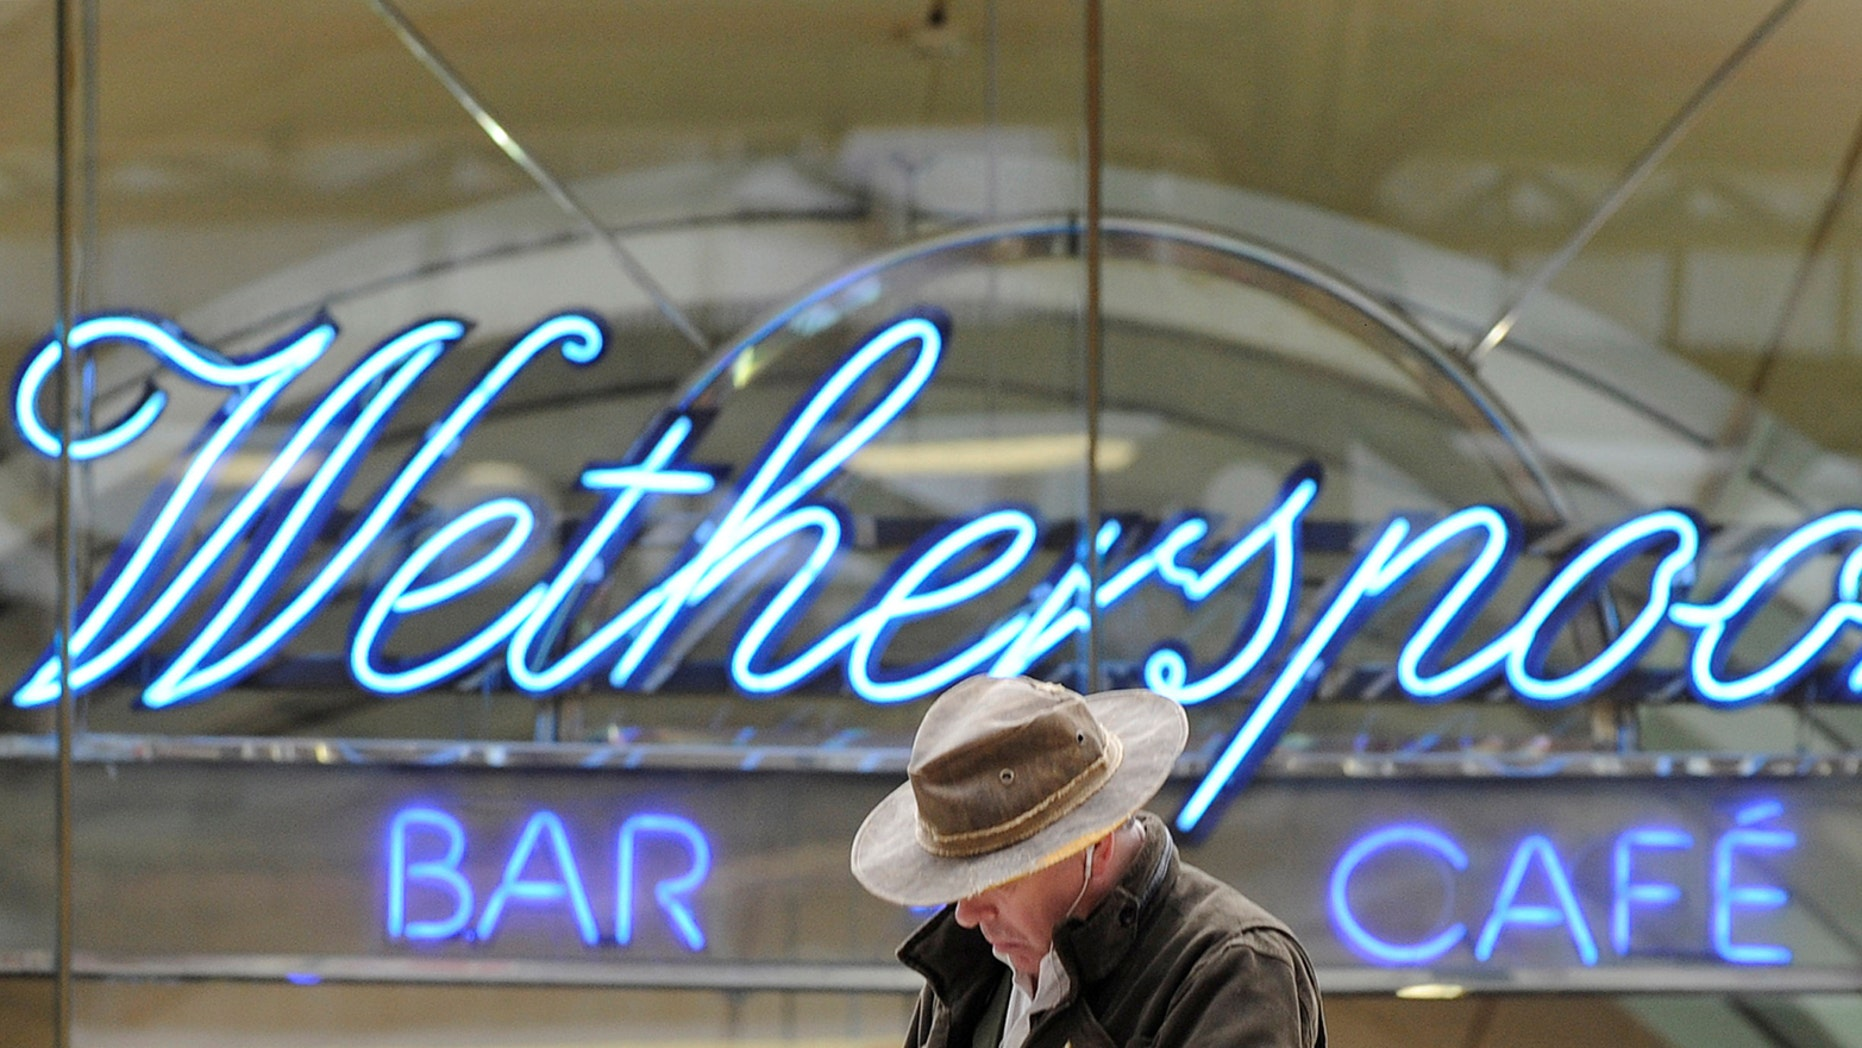 FILE PHOTO: A Wetherspoon's logo is seen at a bar in central London March 13, 2009. (REUTERS/Toby Melville//File Photo)